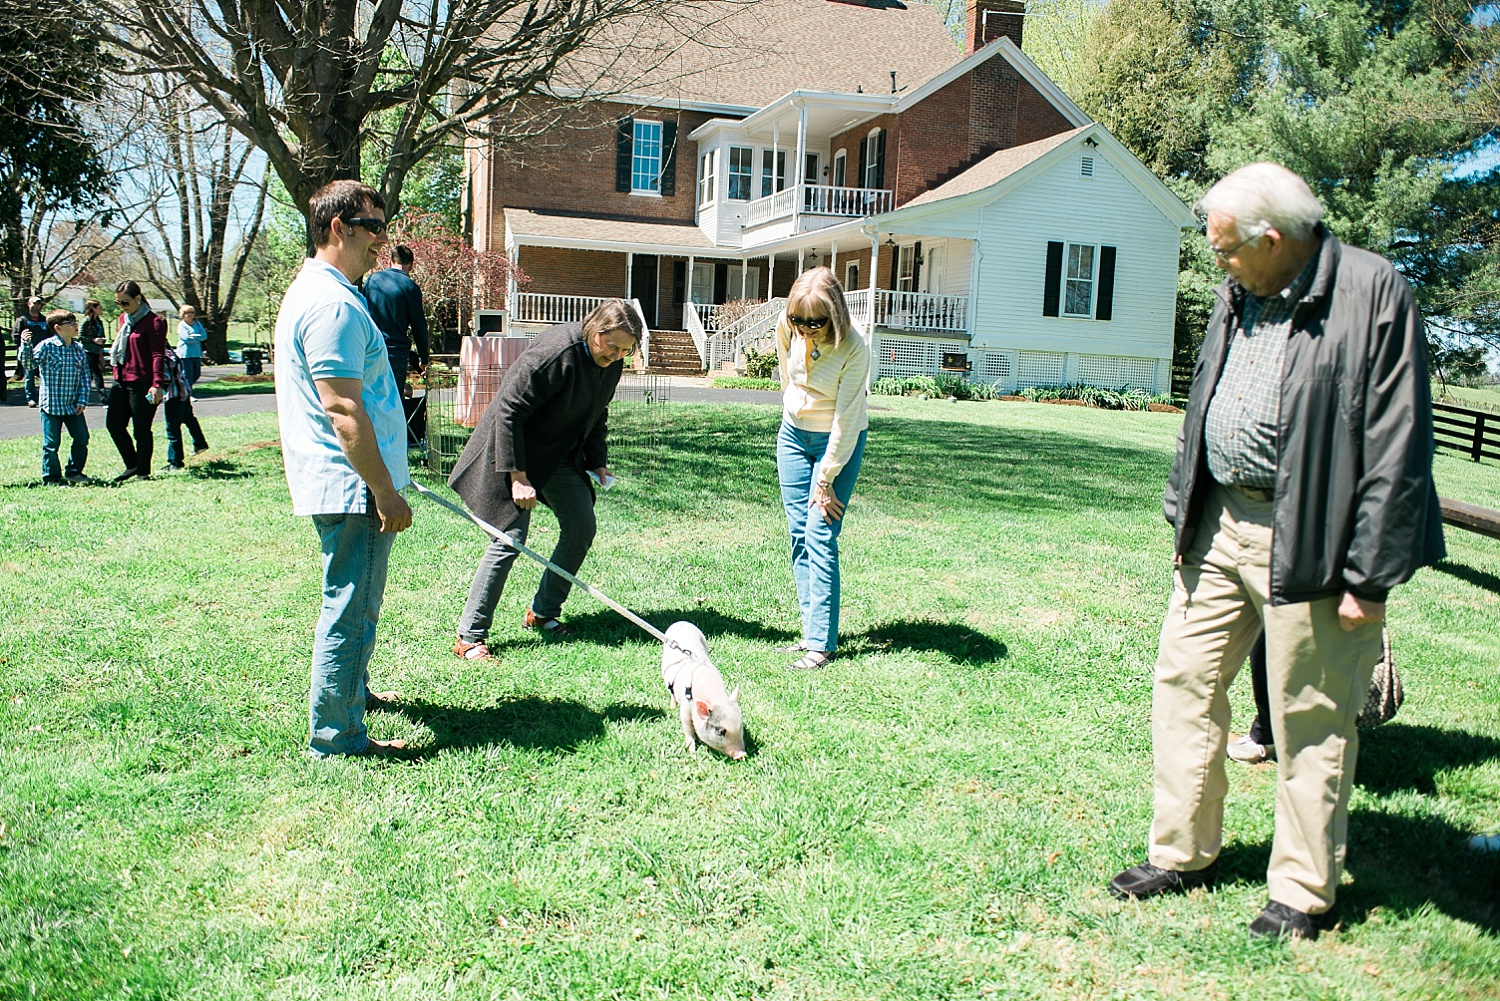 """Arnold, Warrenwood Manor's """"mascot"""", paid everyone a visit but was more interested in eating grass!"""